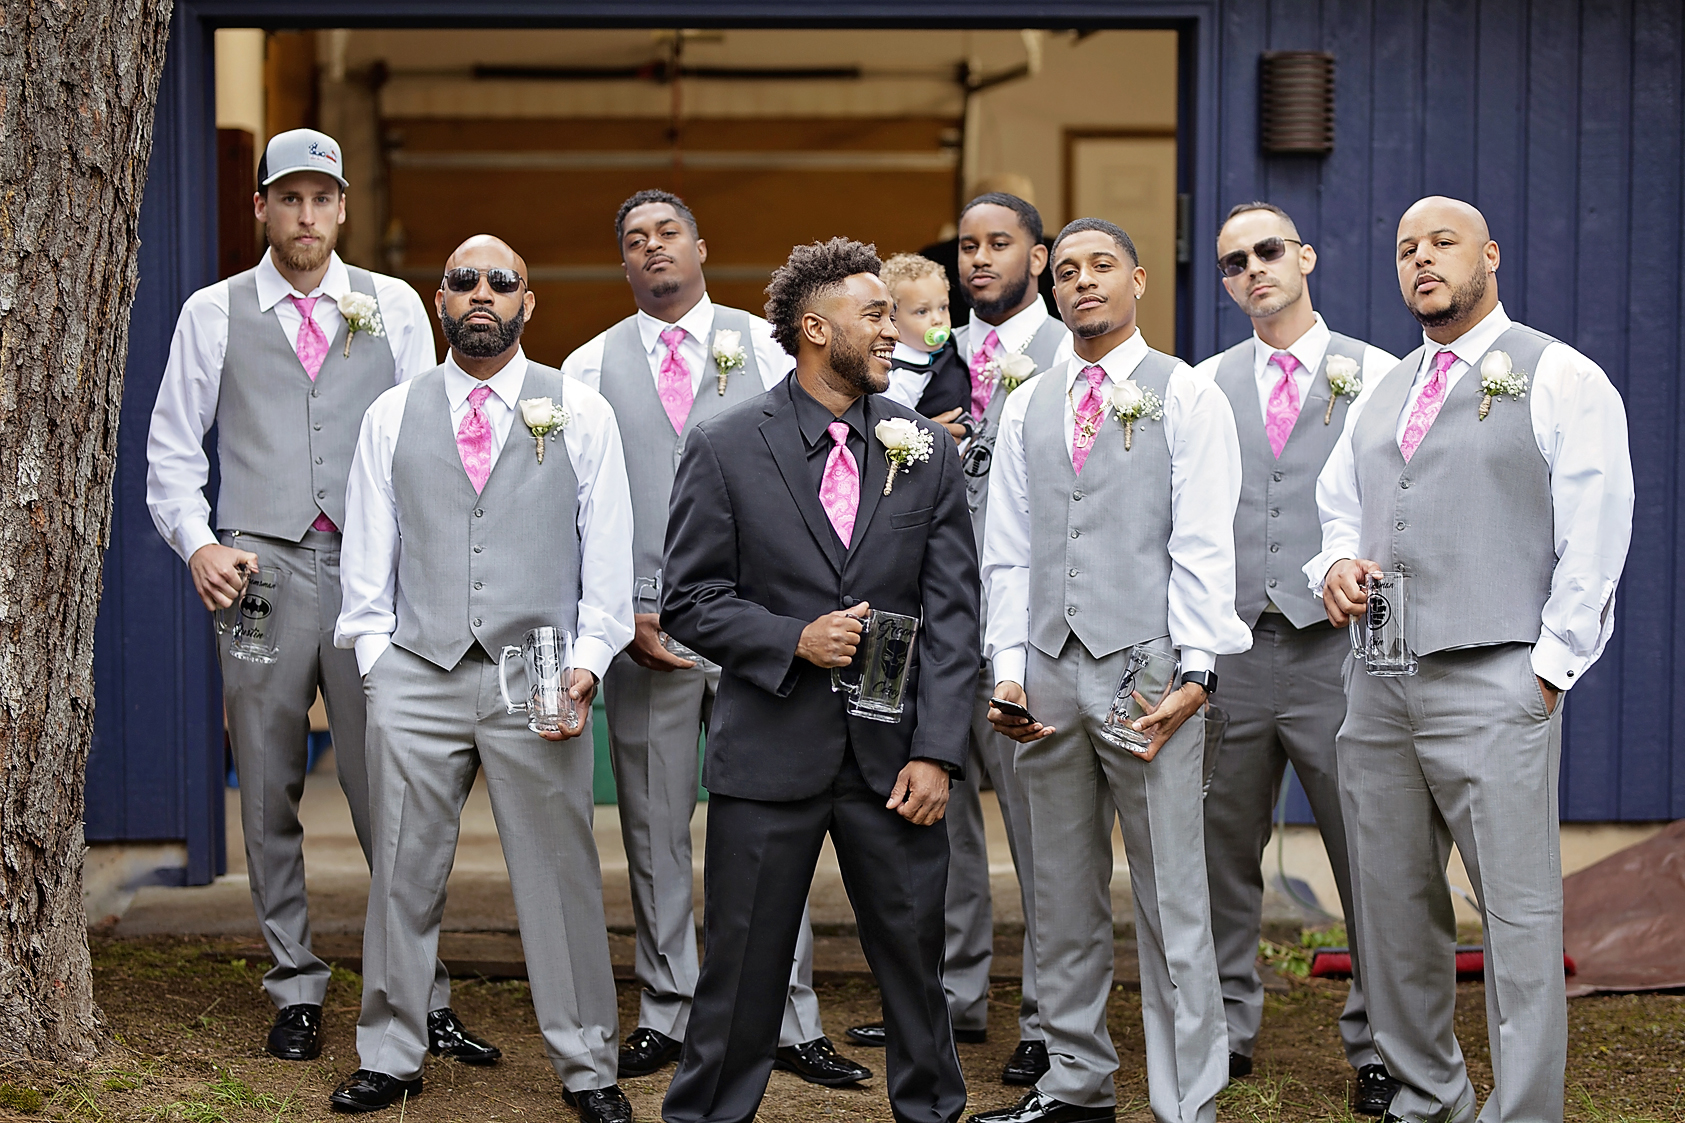 Cheney wedding photographer Nate Robinson Photography, taking groomsmen pictures